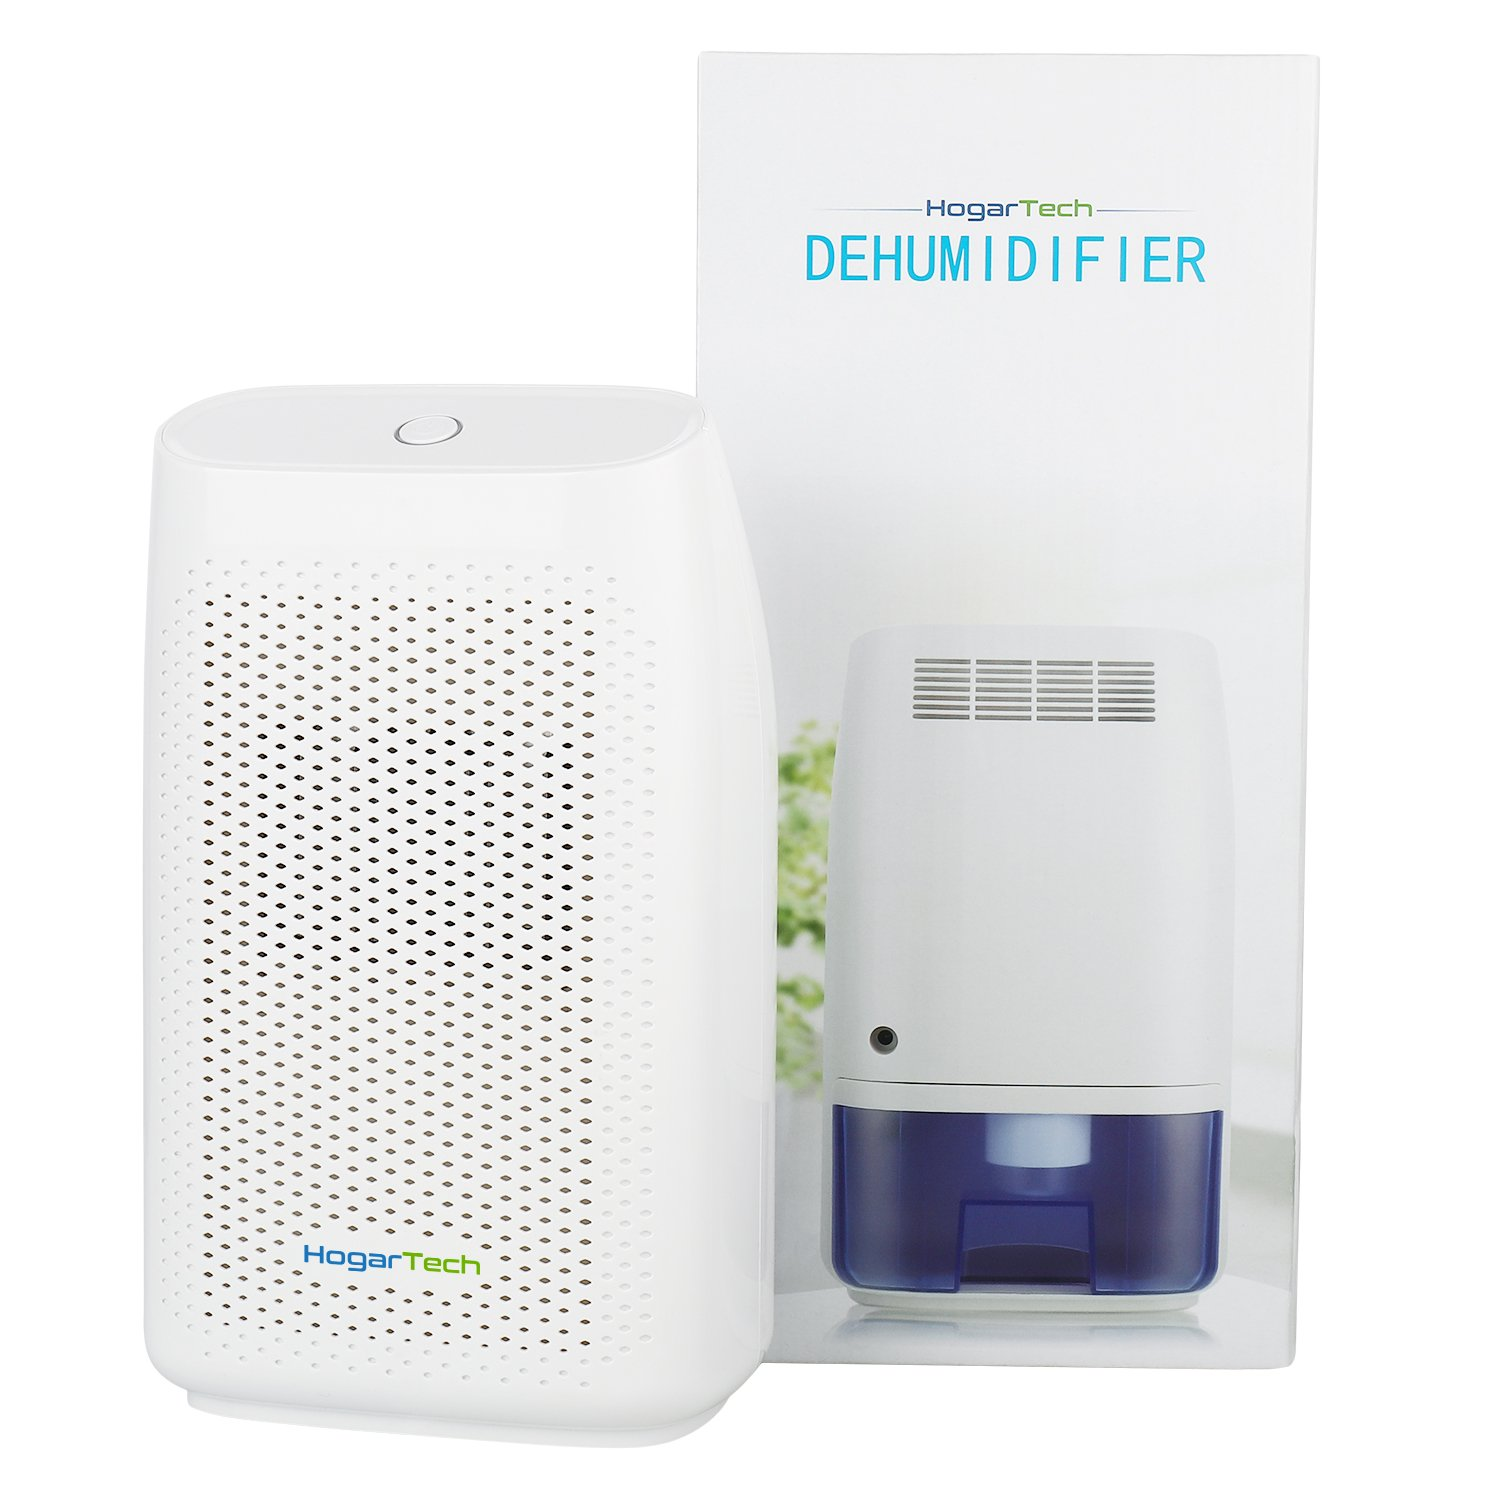 HogarTech Mini Dehumidifier Ultra Quiet Portable Air Dehumidifier - Bathroom air purifier